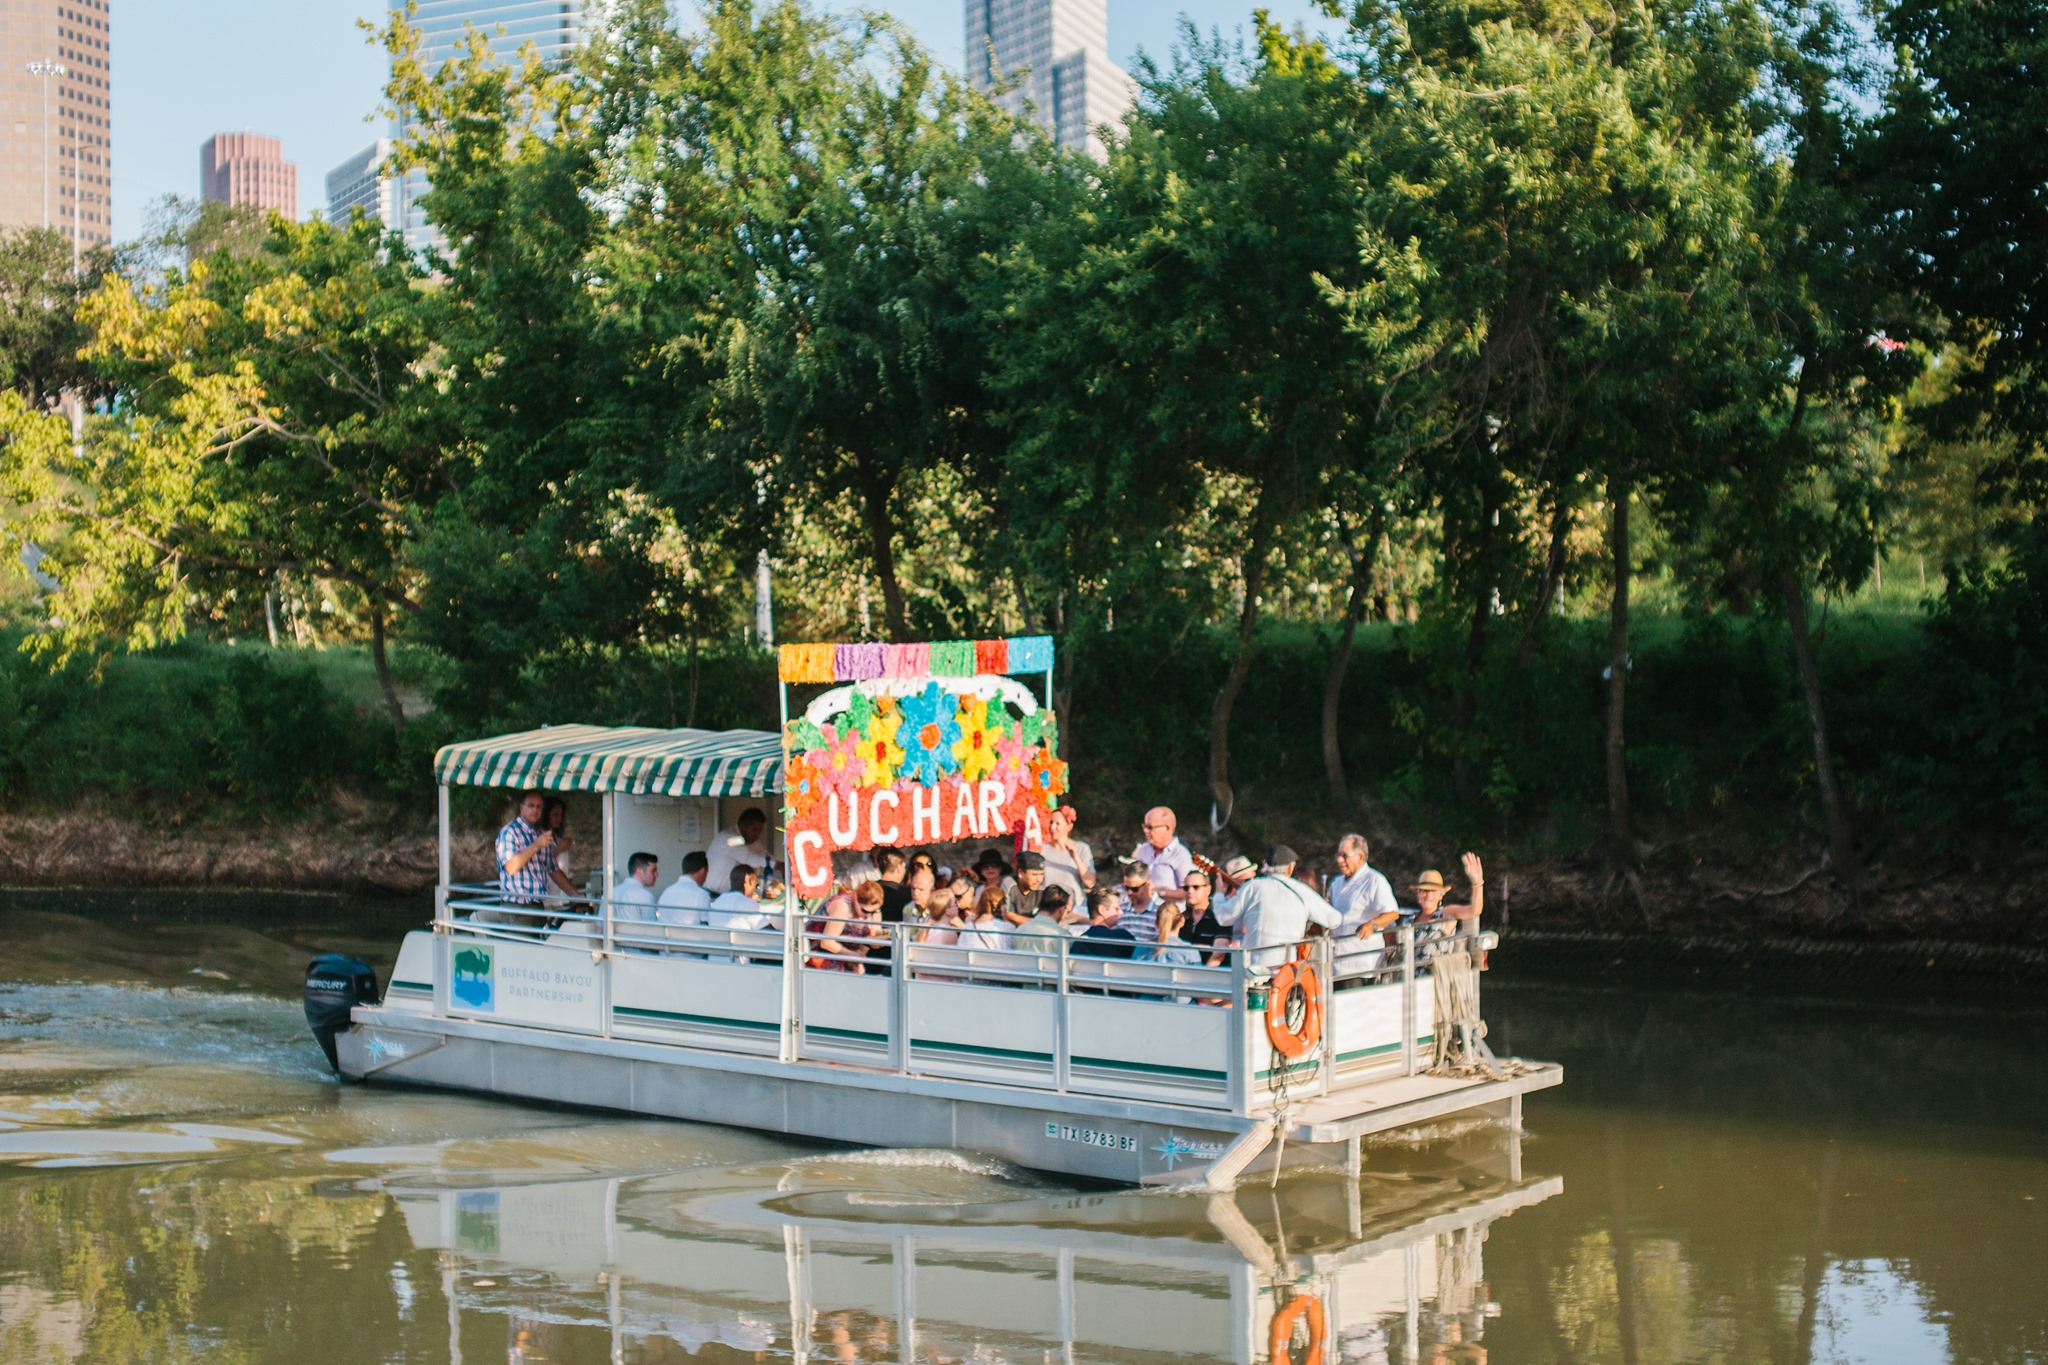 Float down Buffalo Bayou drinking endless margaritas on Cuchara's Xochimilco-inspired boat tour